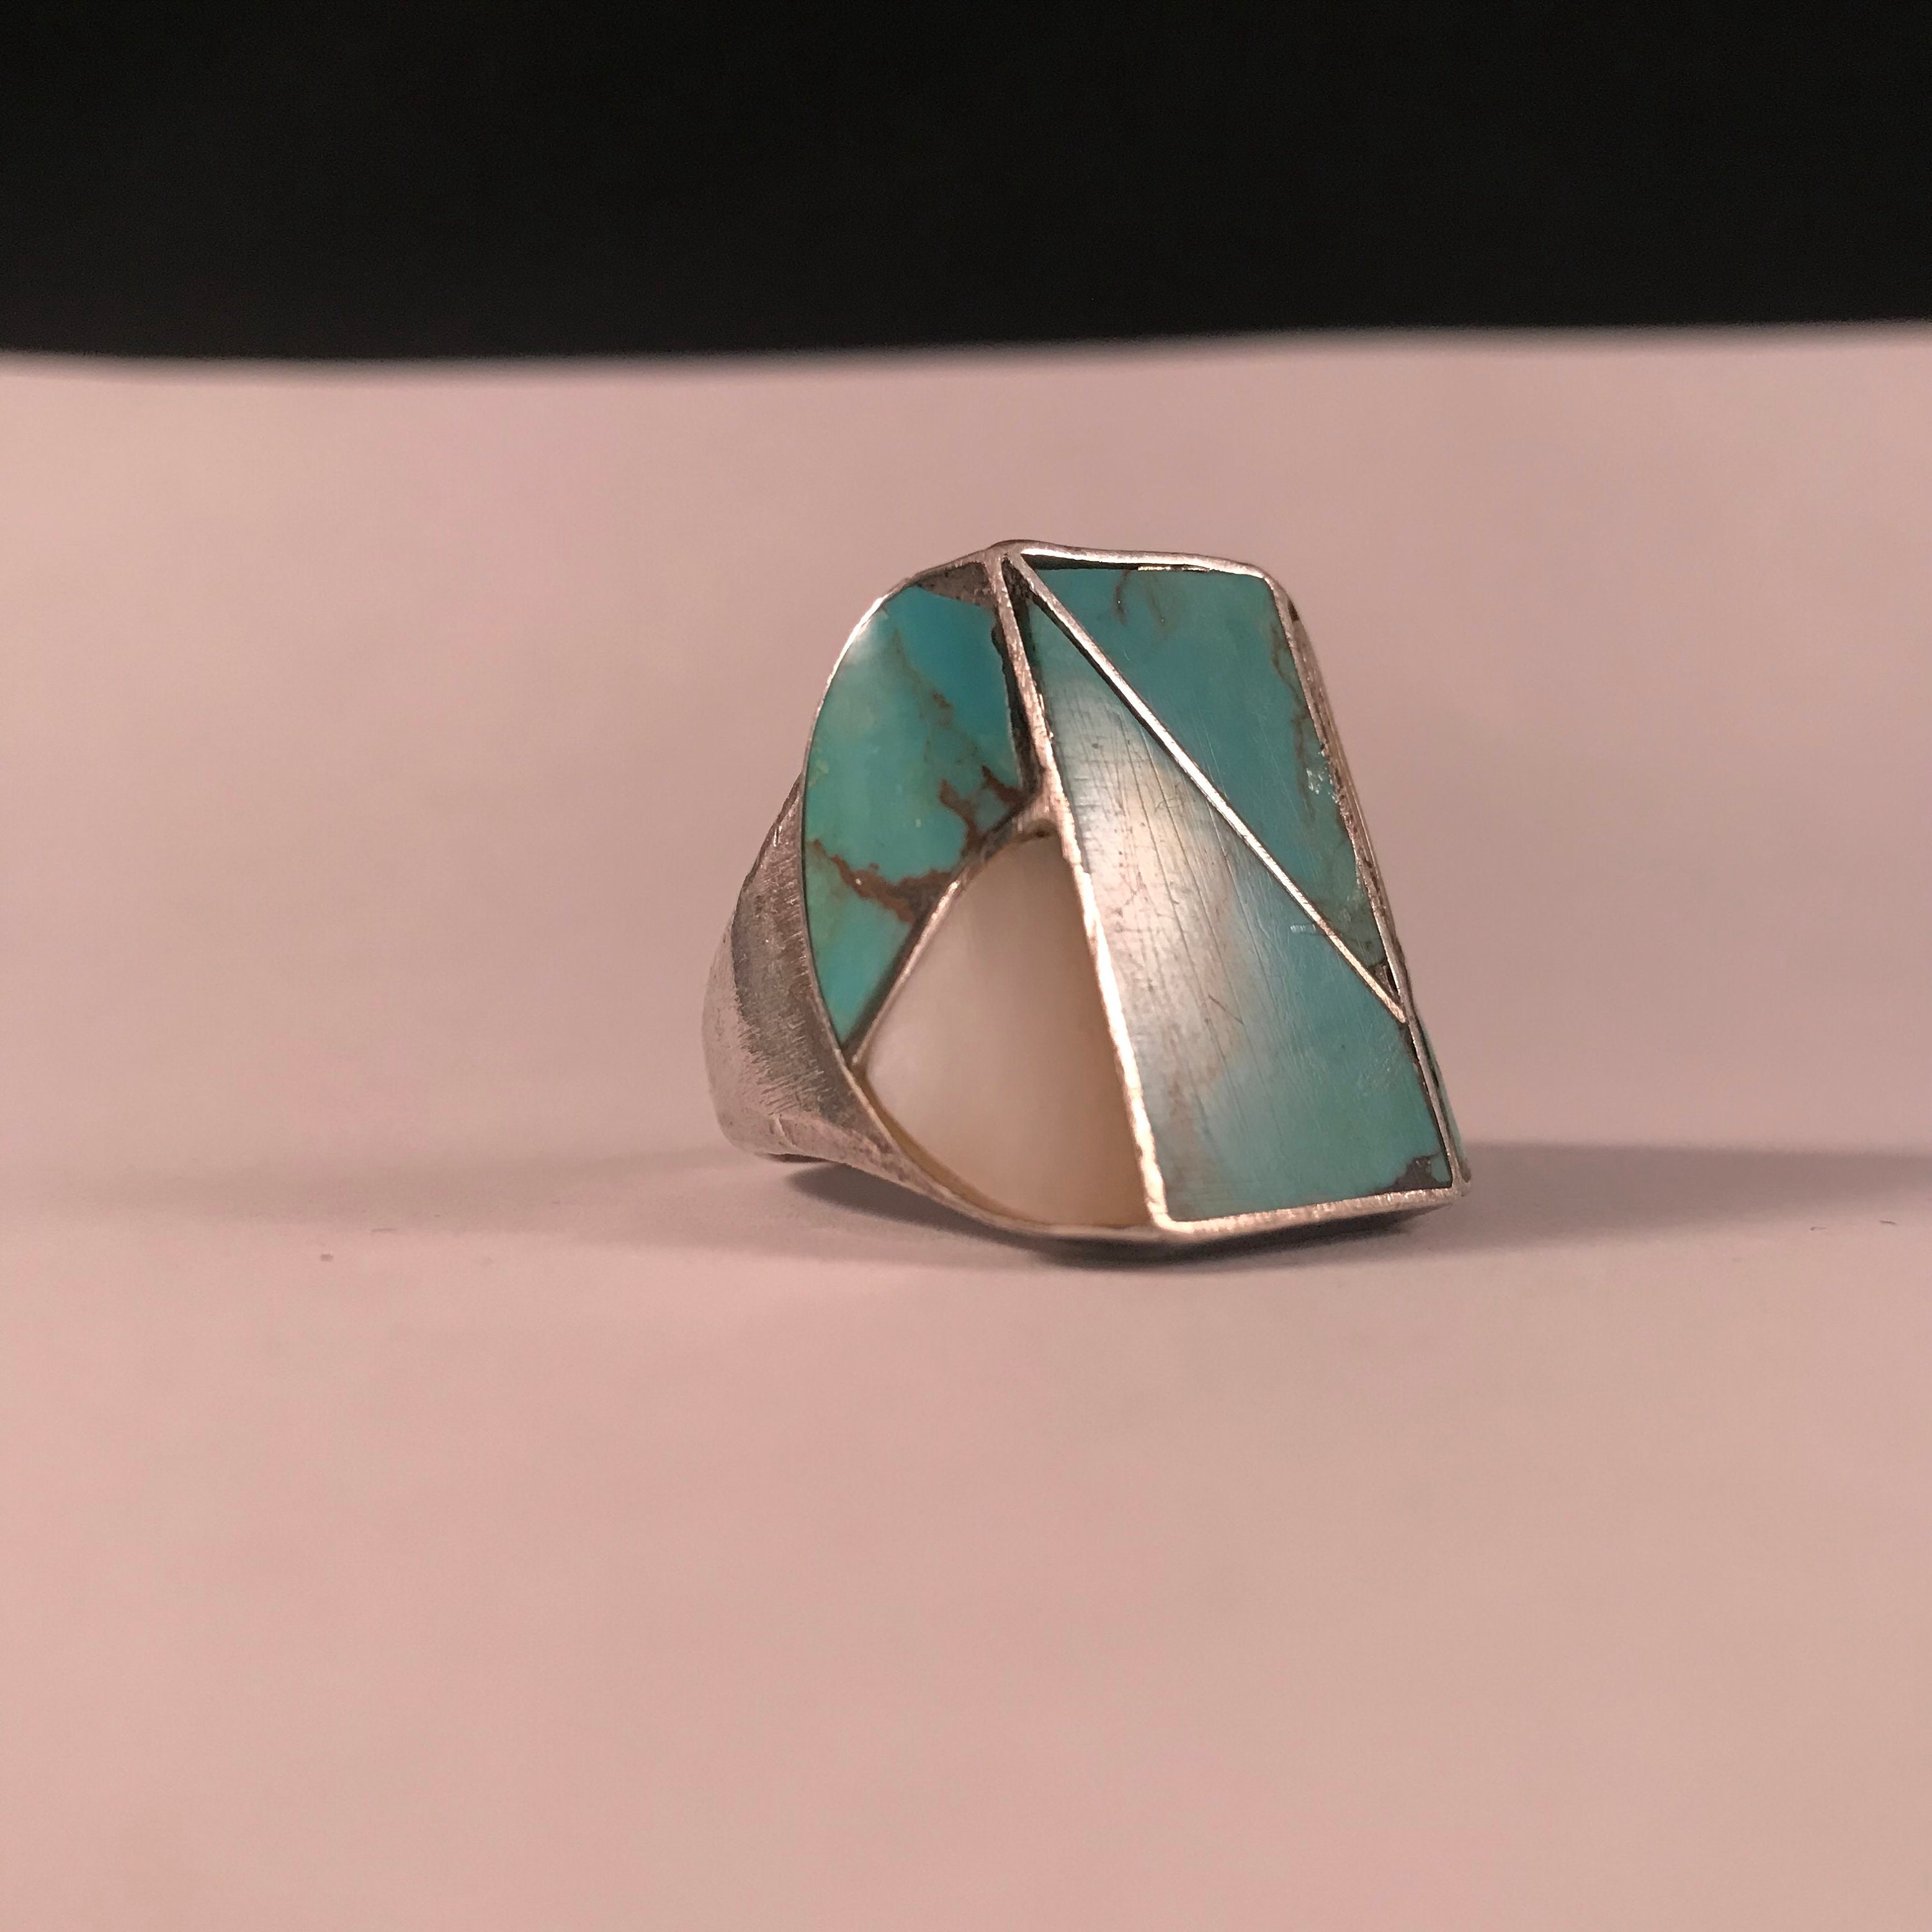 Vintage Native American zuni turquoise and mother of pearl